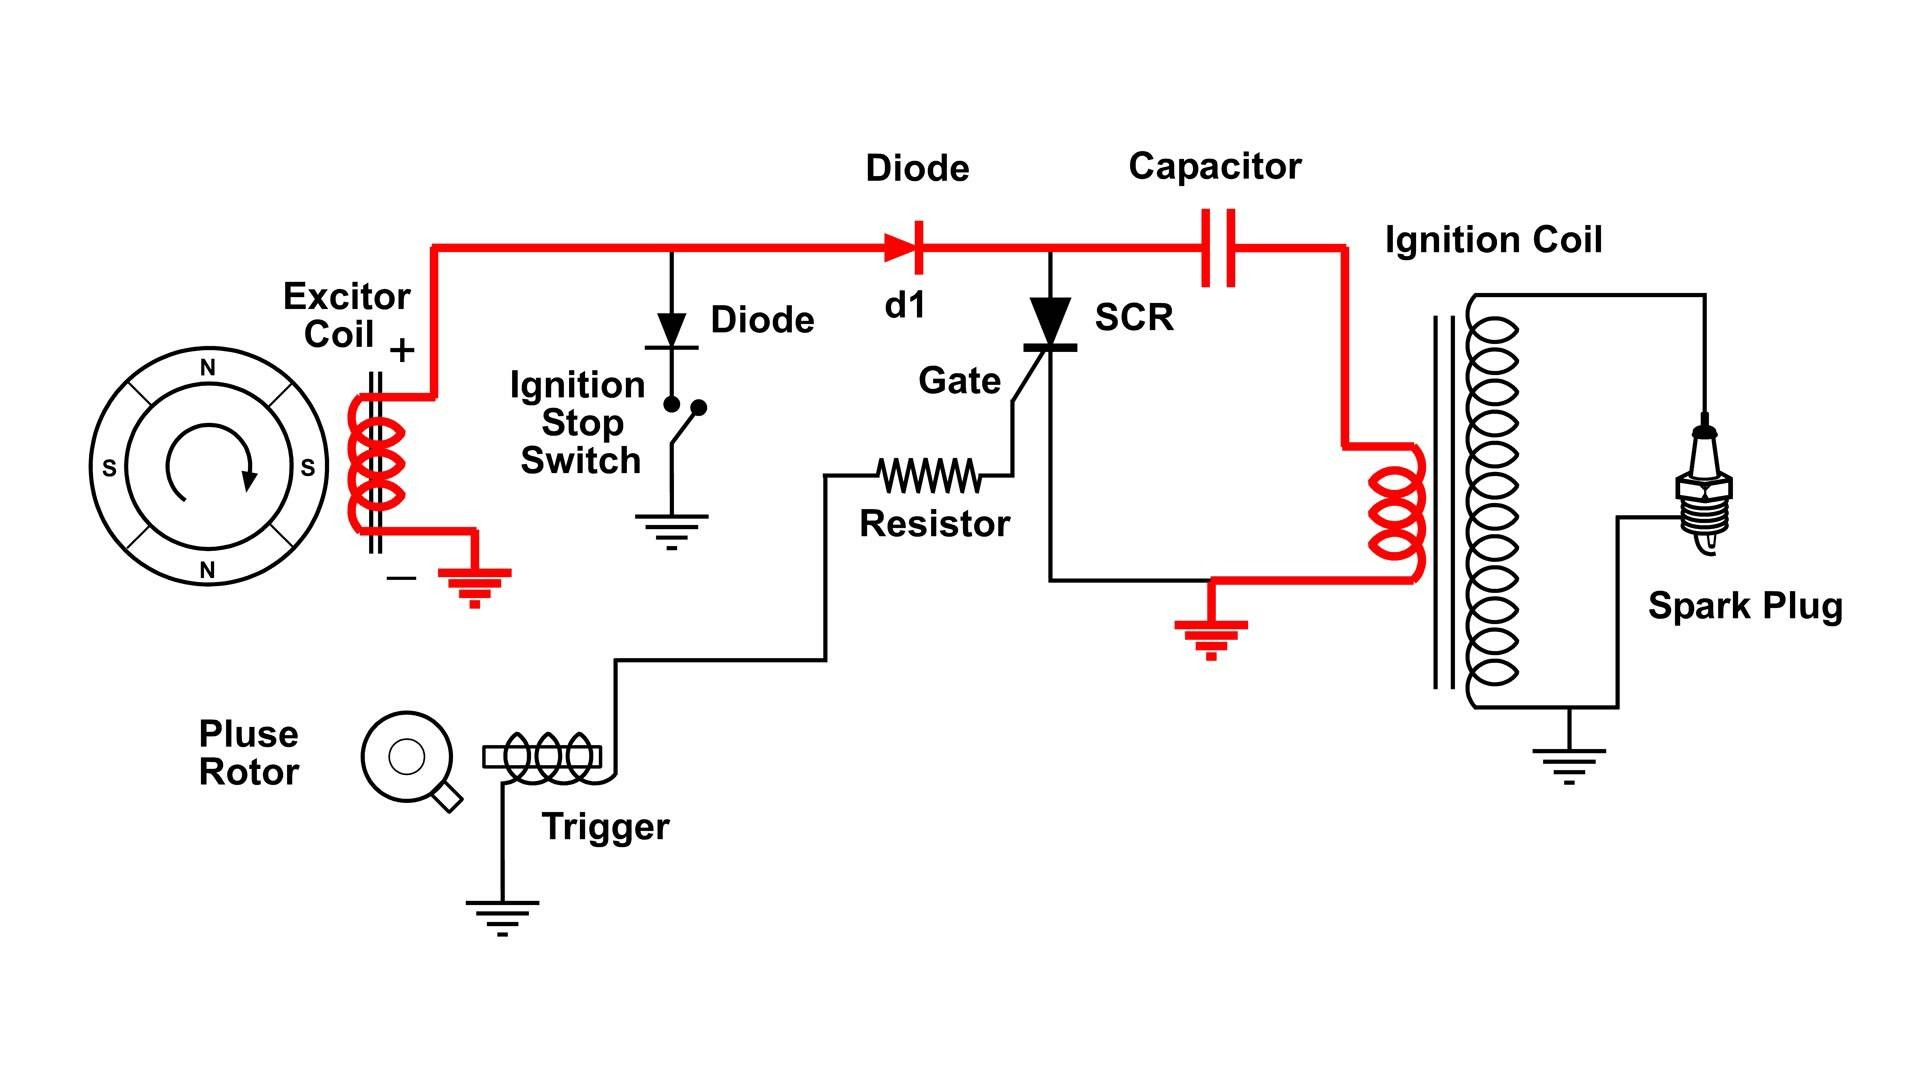 Honda Gx160 Parts Diagram Cdi Capacitor Discharge Ignition Circuit Demo Of Honda Gx160 Parts Diagram